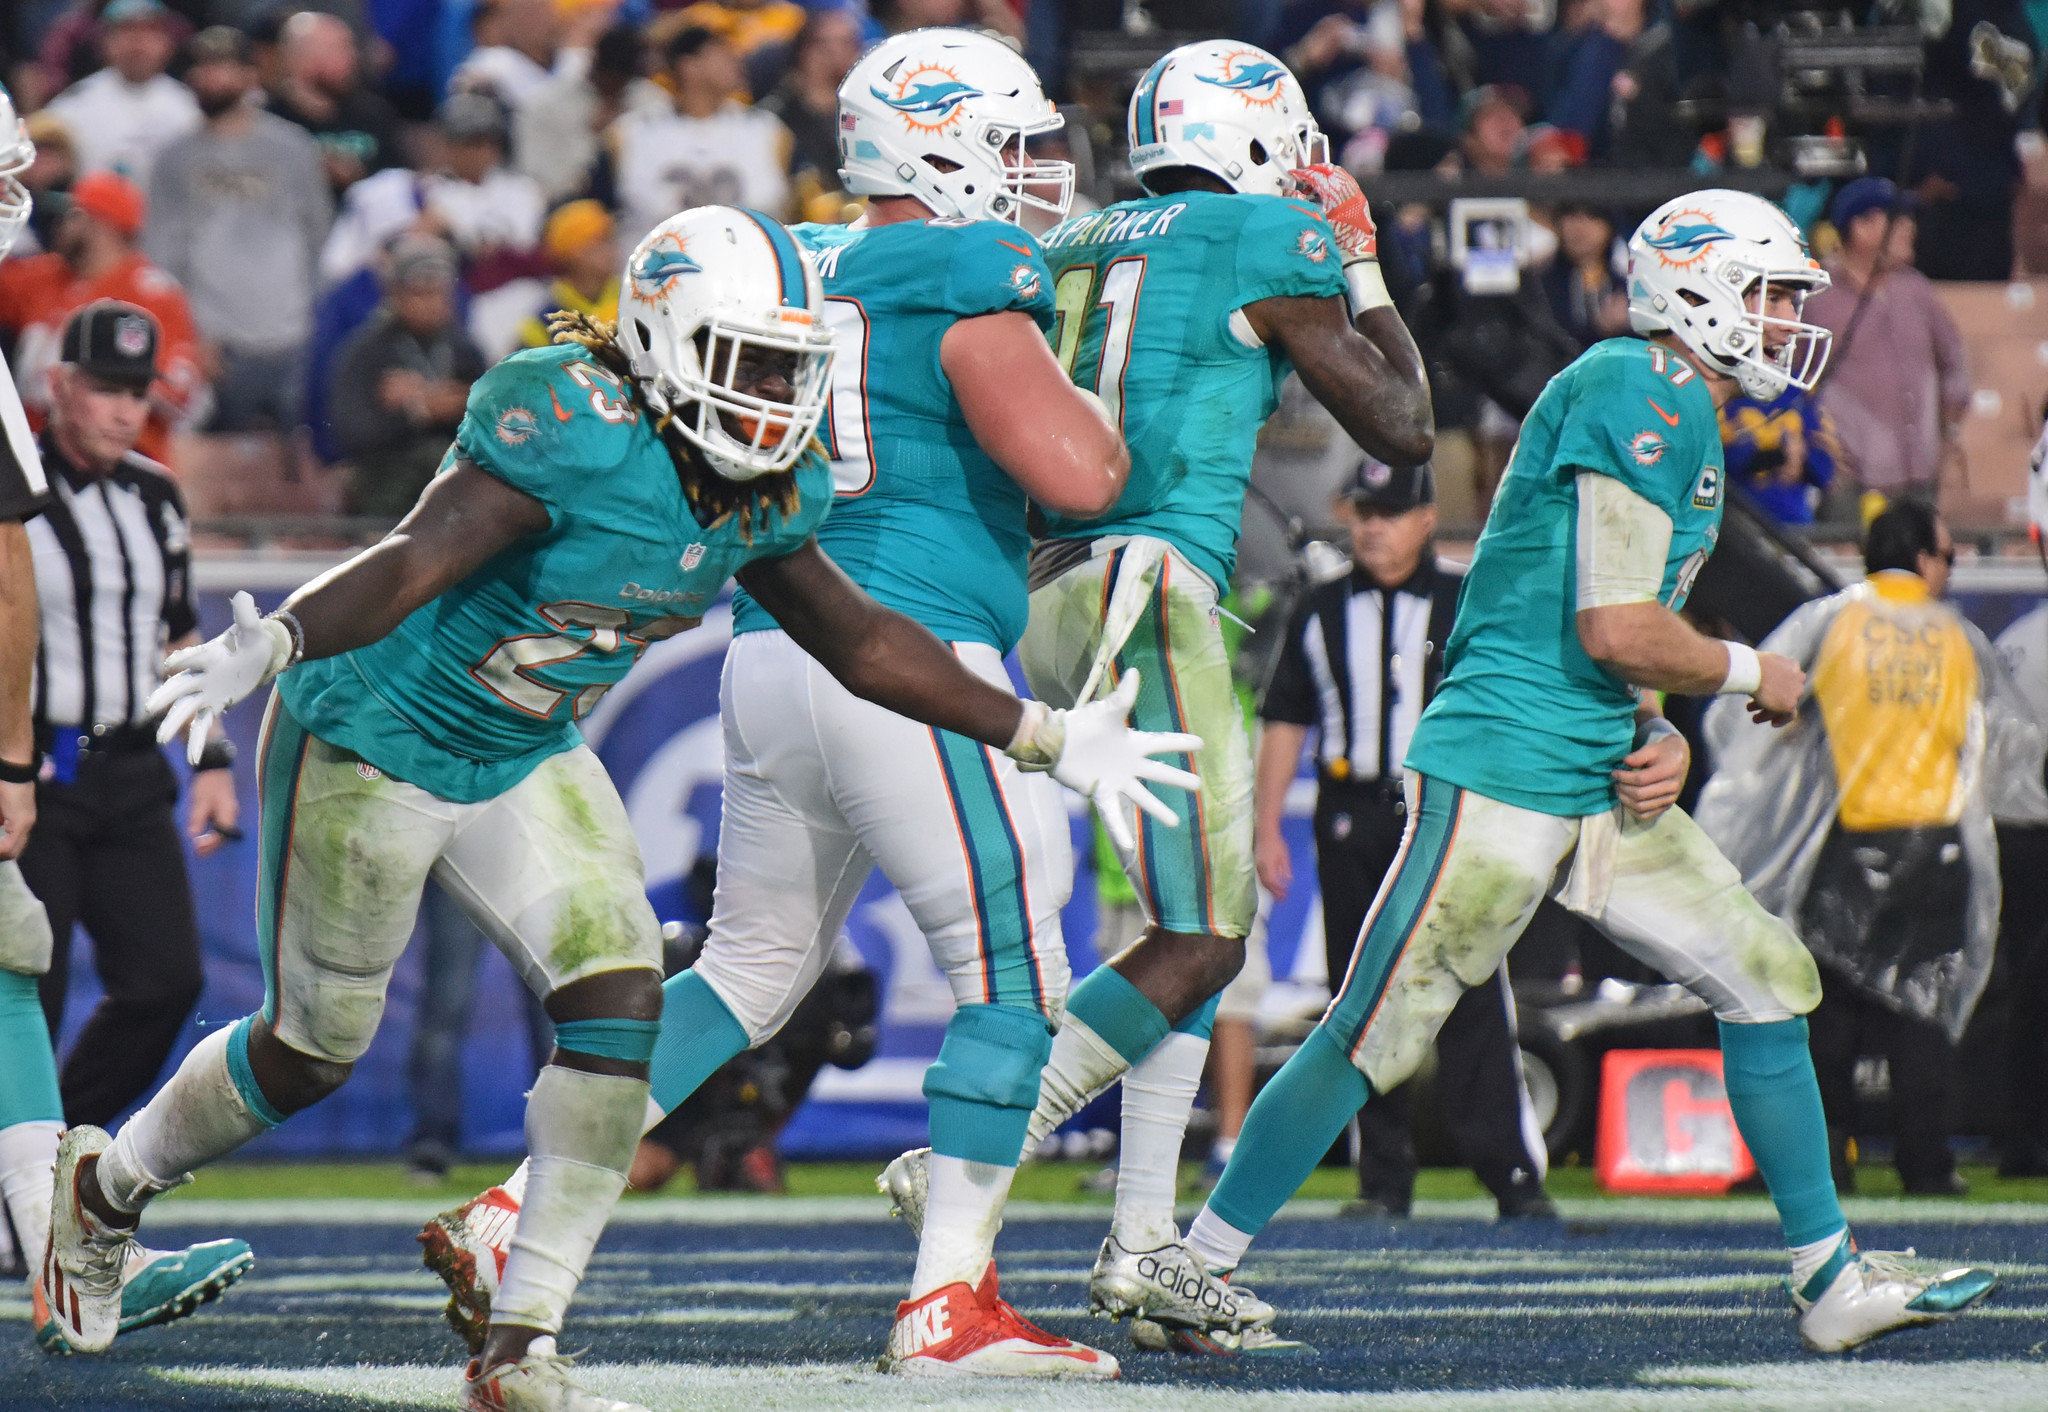 Fl-dolphins-advance-1127-20161126